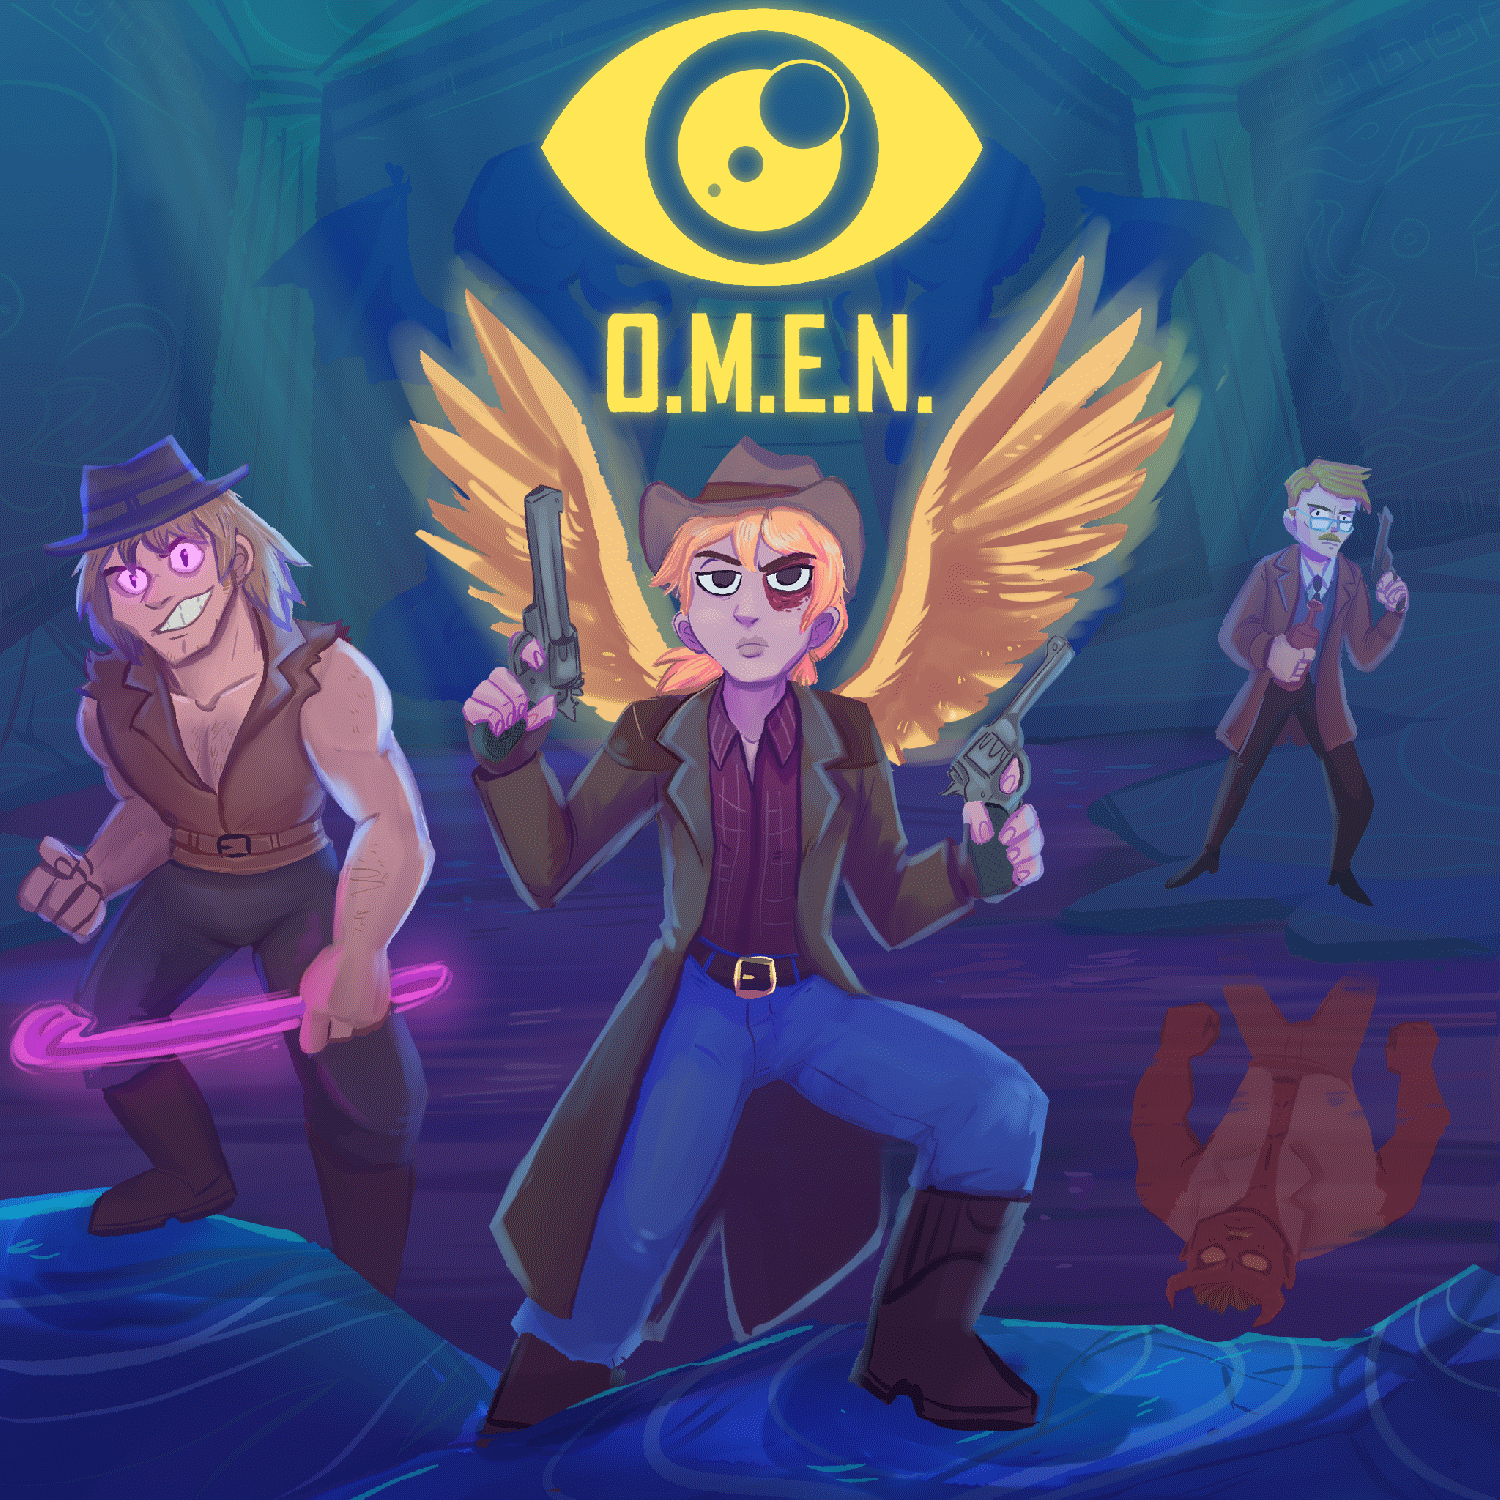 OMEN S2E14 - A Chant of Cold and Warmth